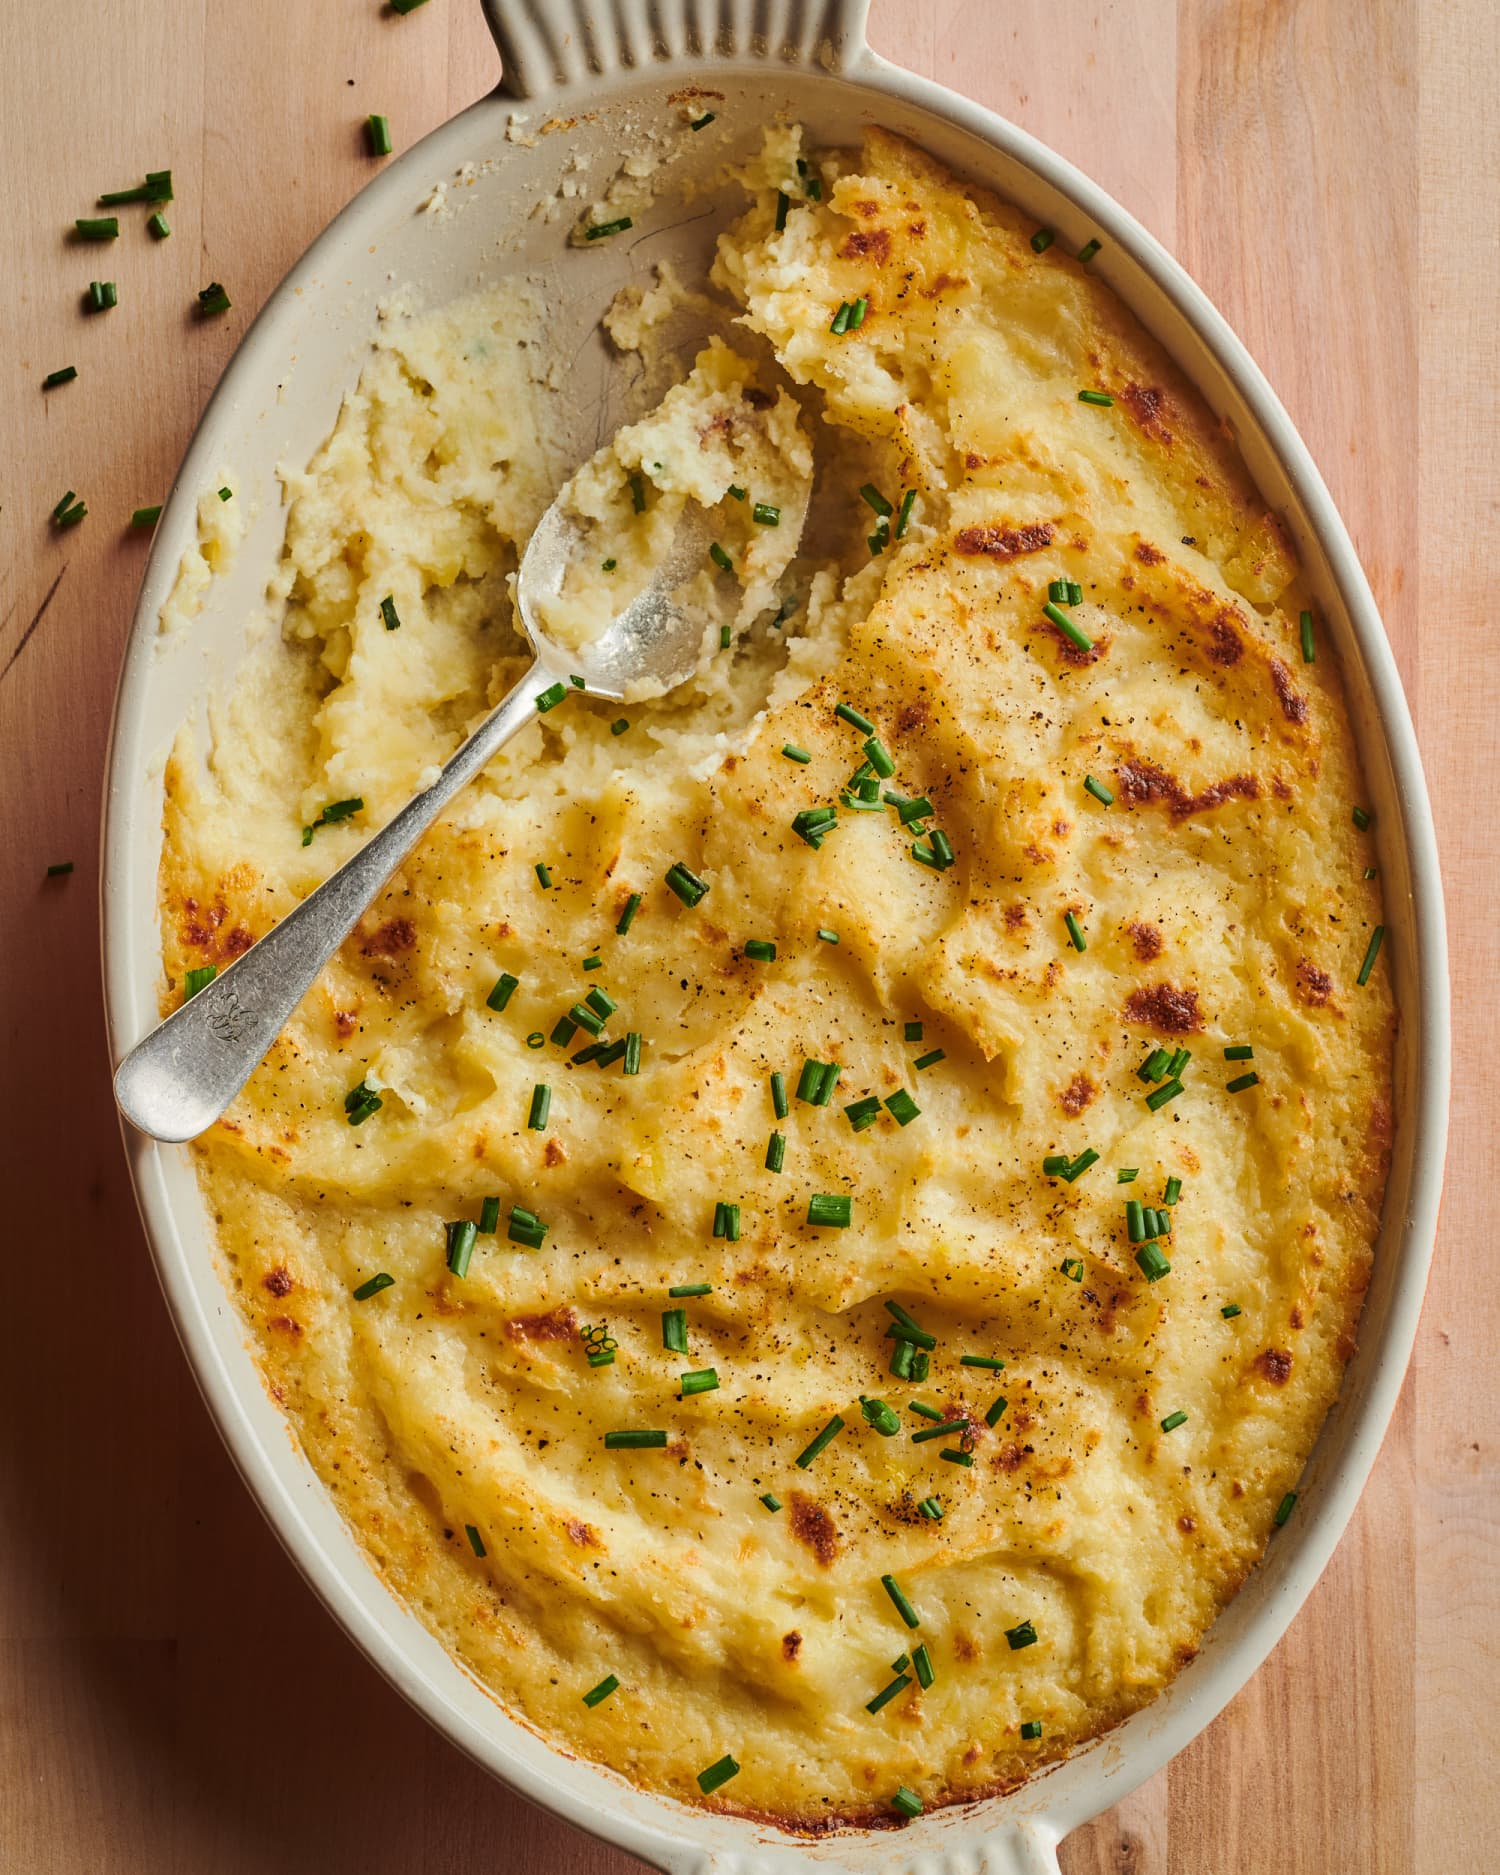 Cheesy Baked Mashed Potatoes Are the Perfect Make-Ahead Side